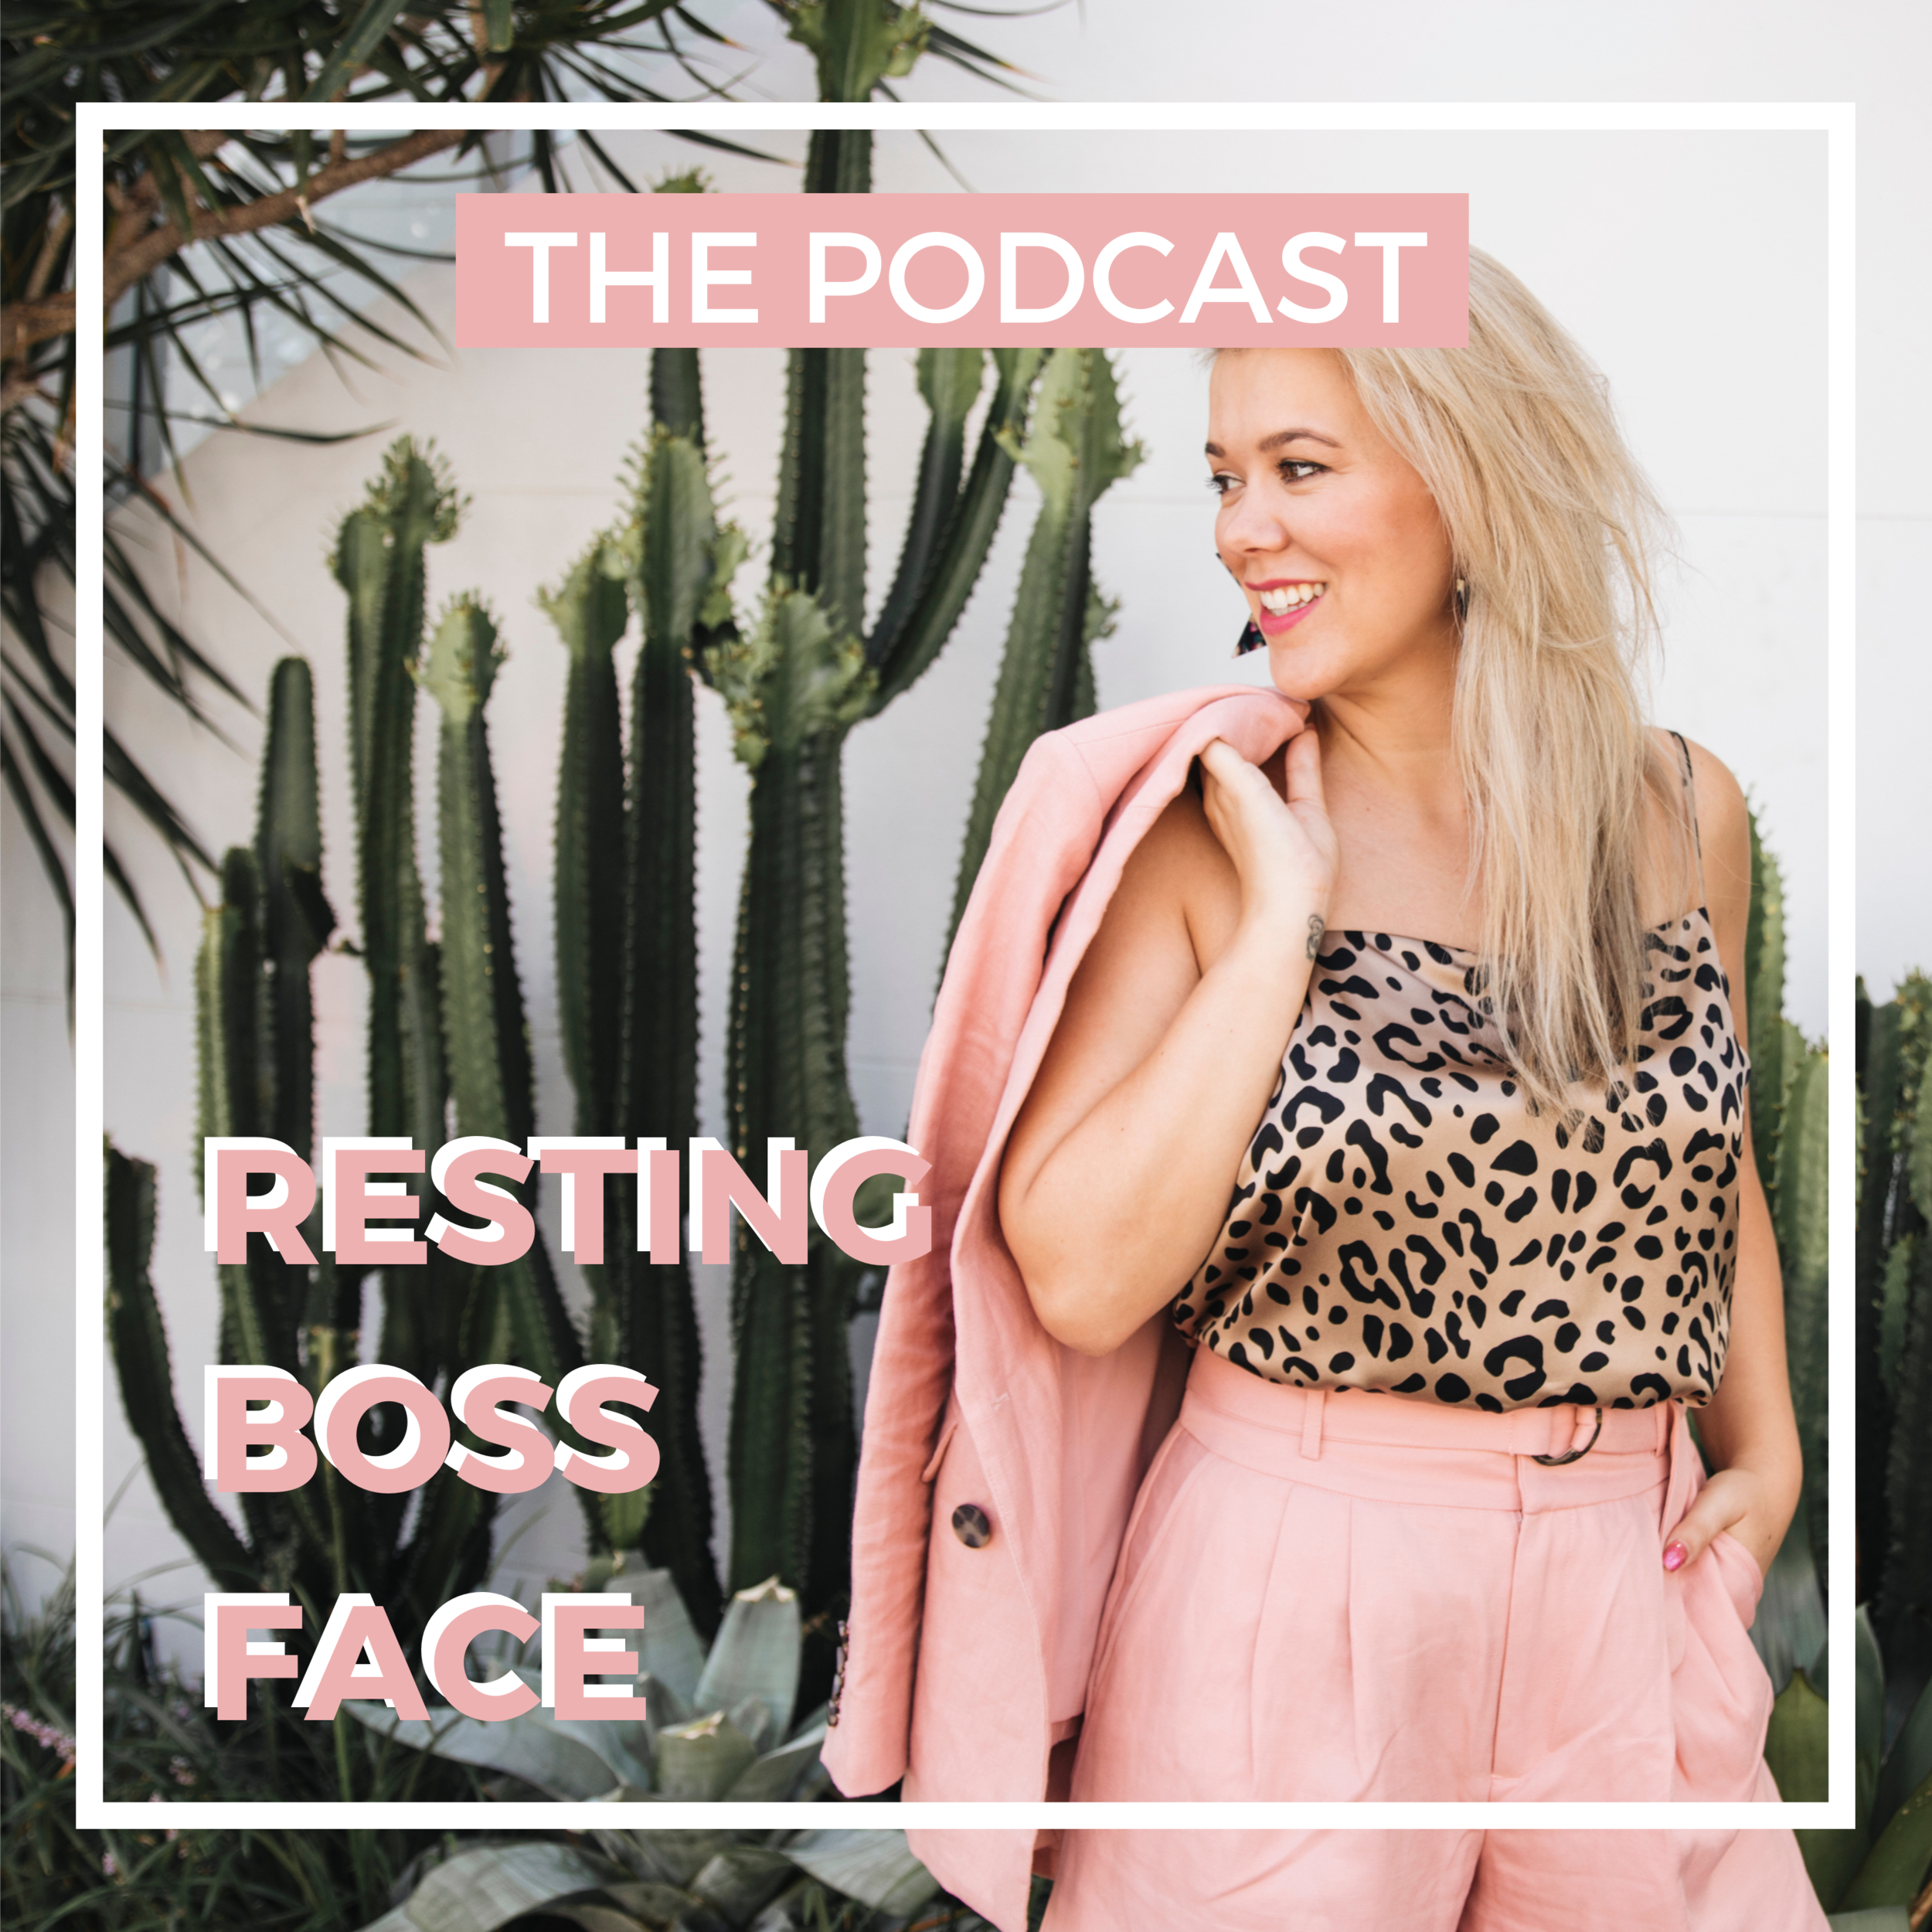 Resting Boss Face The Podcast